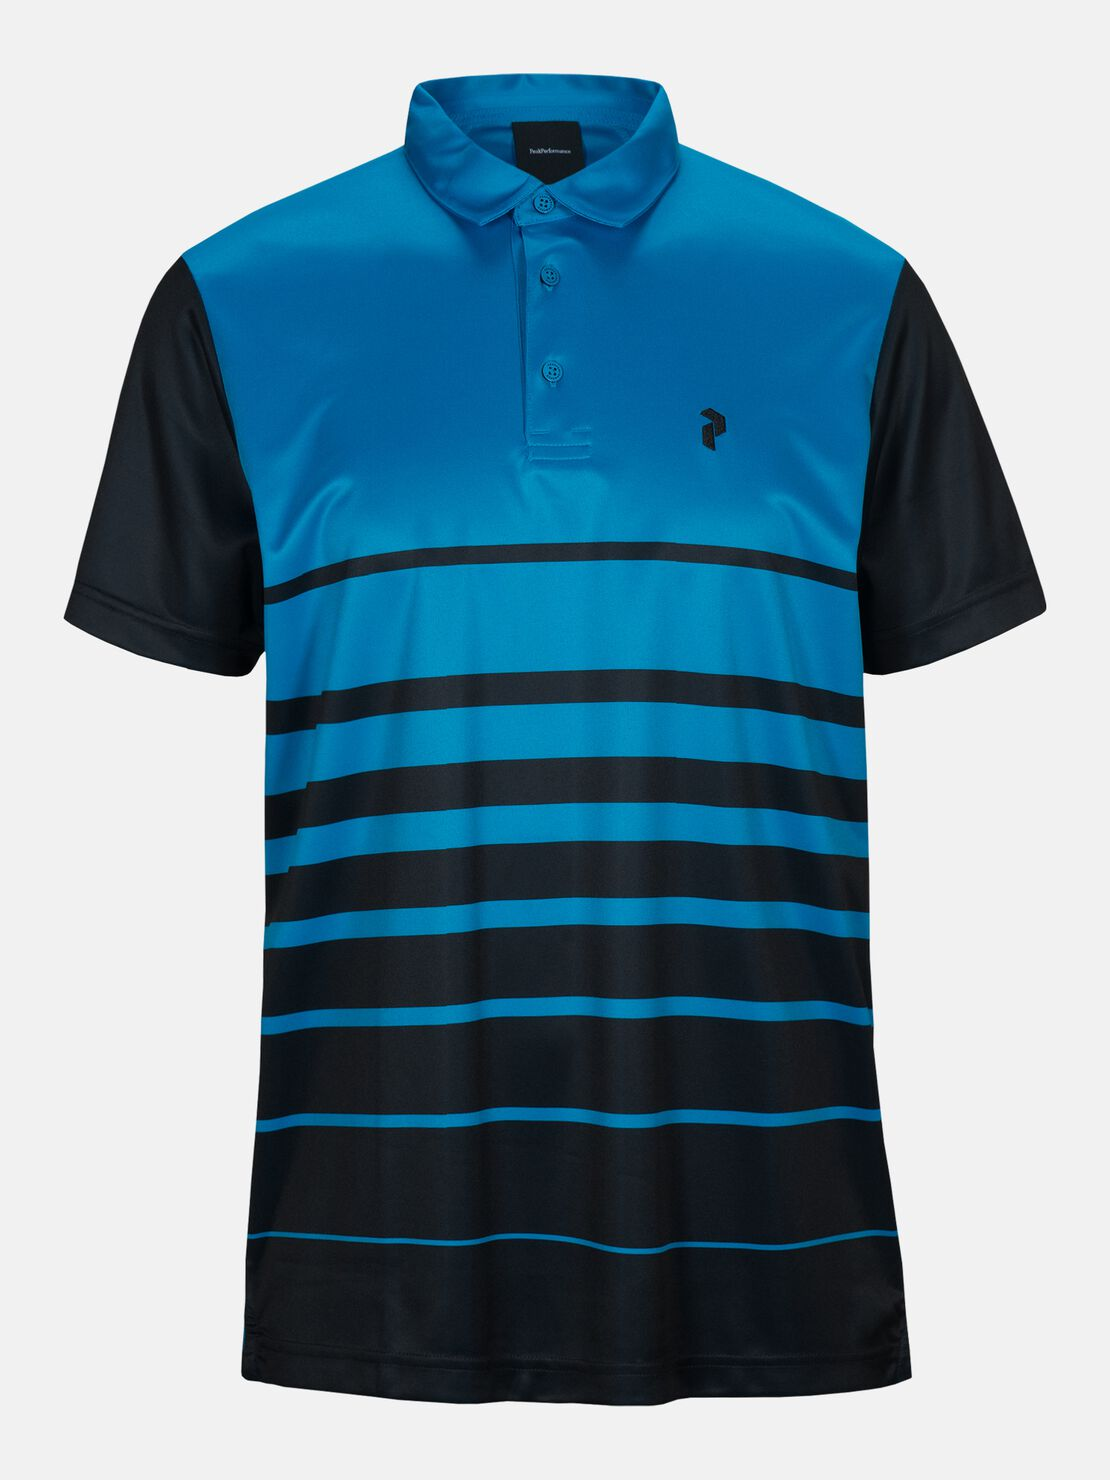 Peak Performance Golf Bandon Print Polo Atlantic